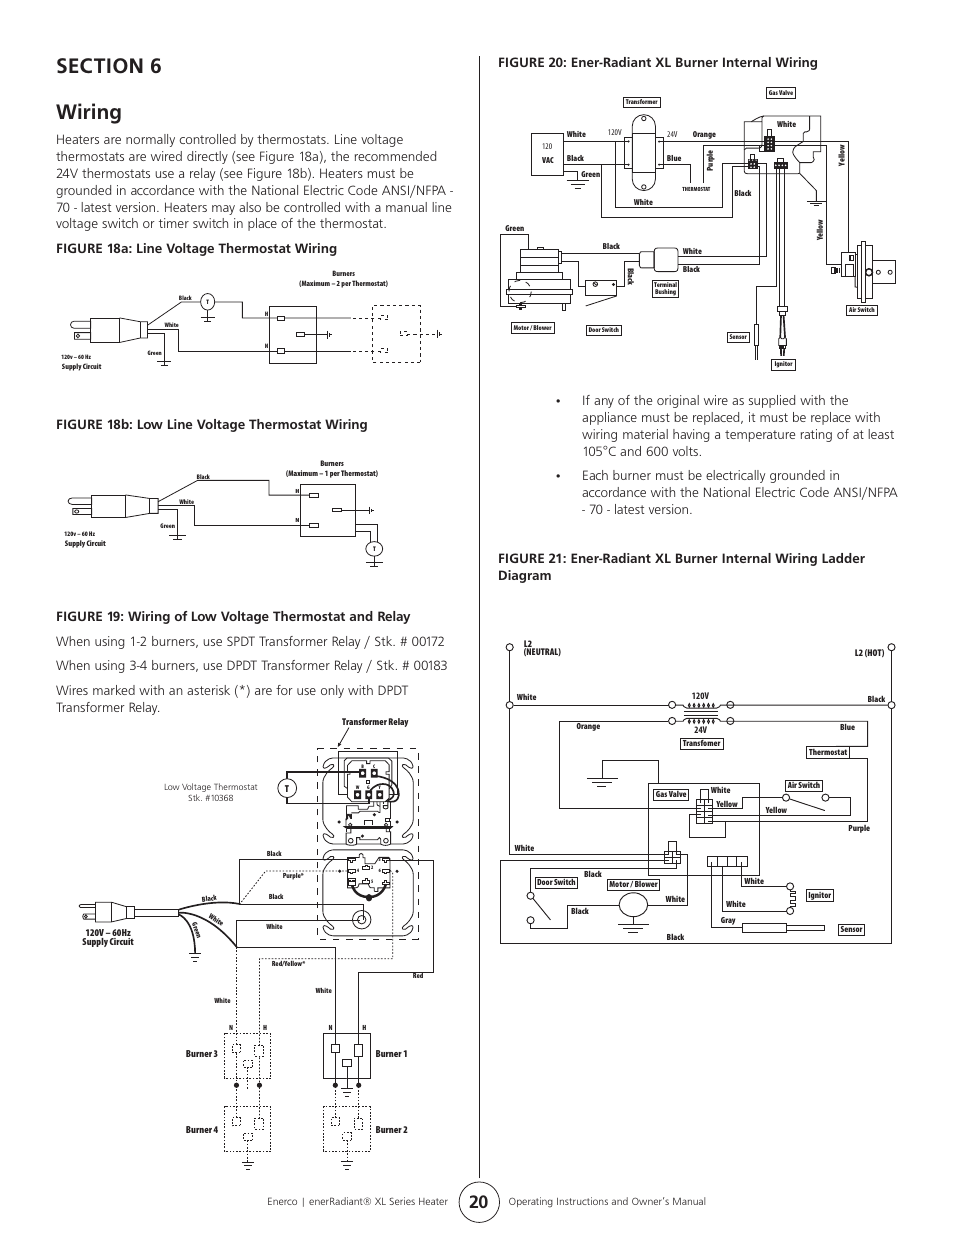 medium resolution of figure 18b low line voltage thermostat wiring figure 20 ener radiant xl